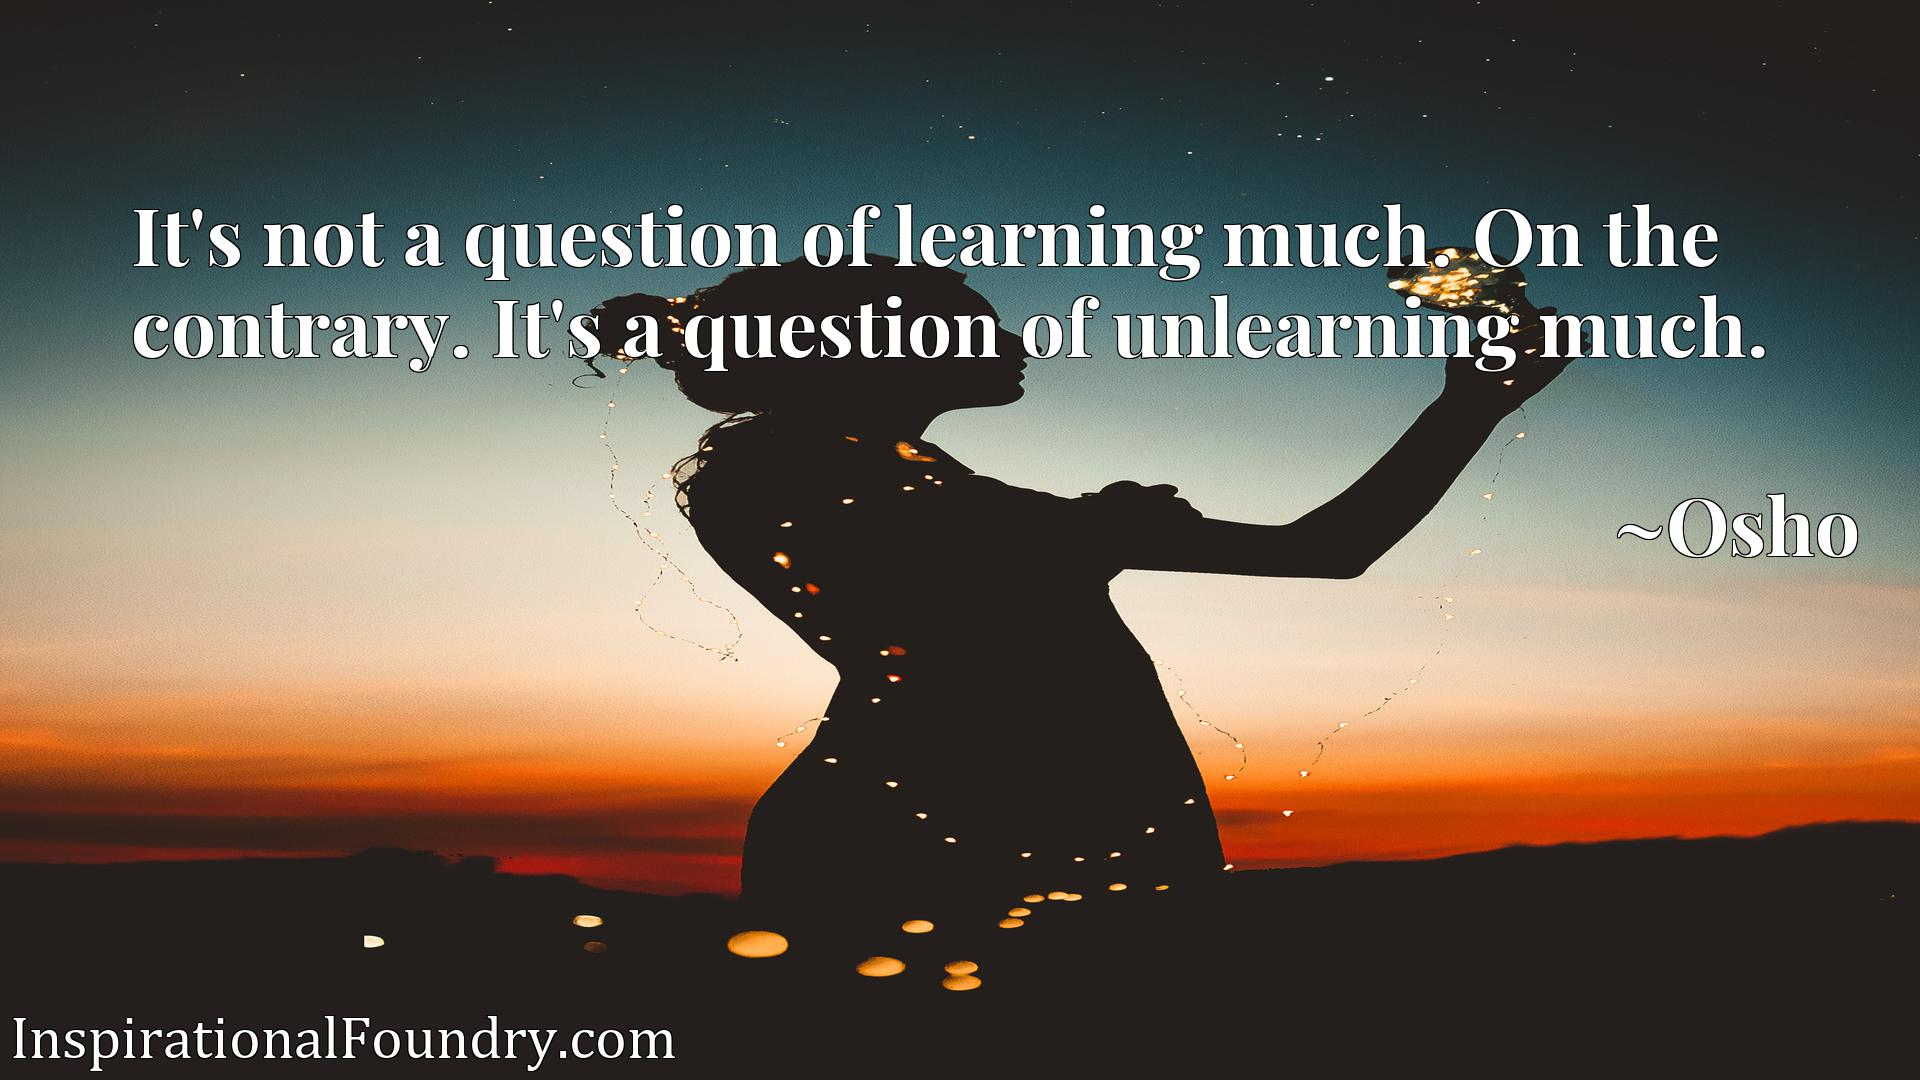 It's not a question of learning much. On the contrary. It's a question of unlearning much.